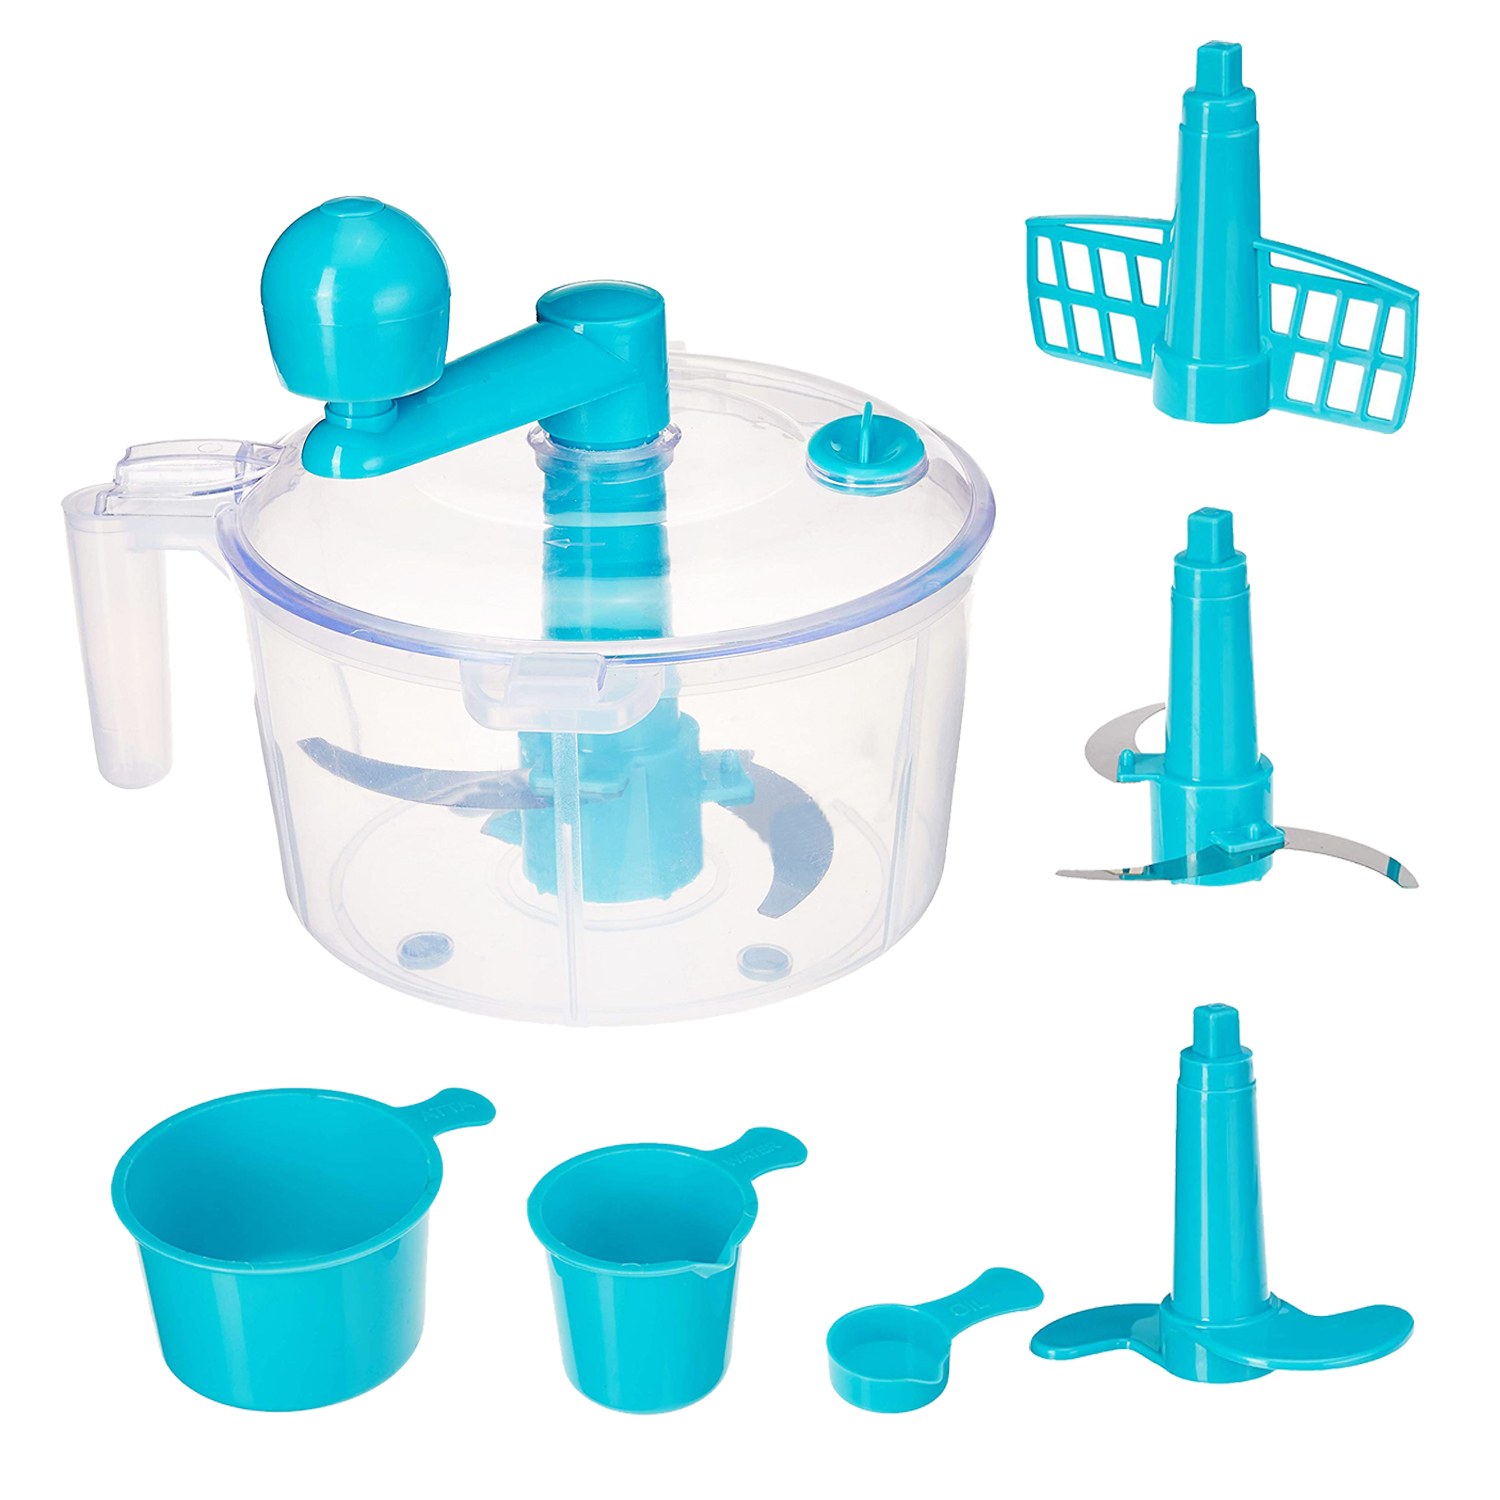 Kuber Industries Plastic 3 In 1 Dough/Atta Maker Vegetable Cutter  Beater/Churner (Sky Blue) - CTKTC30887